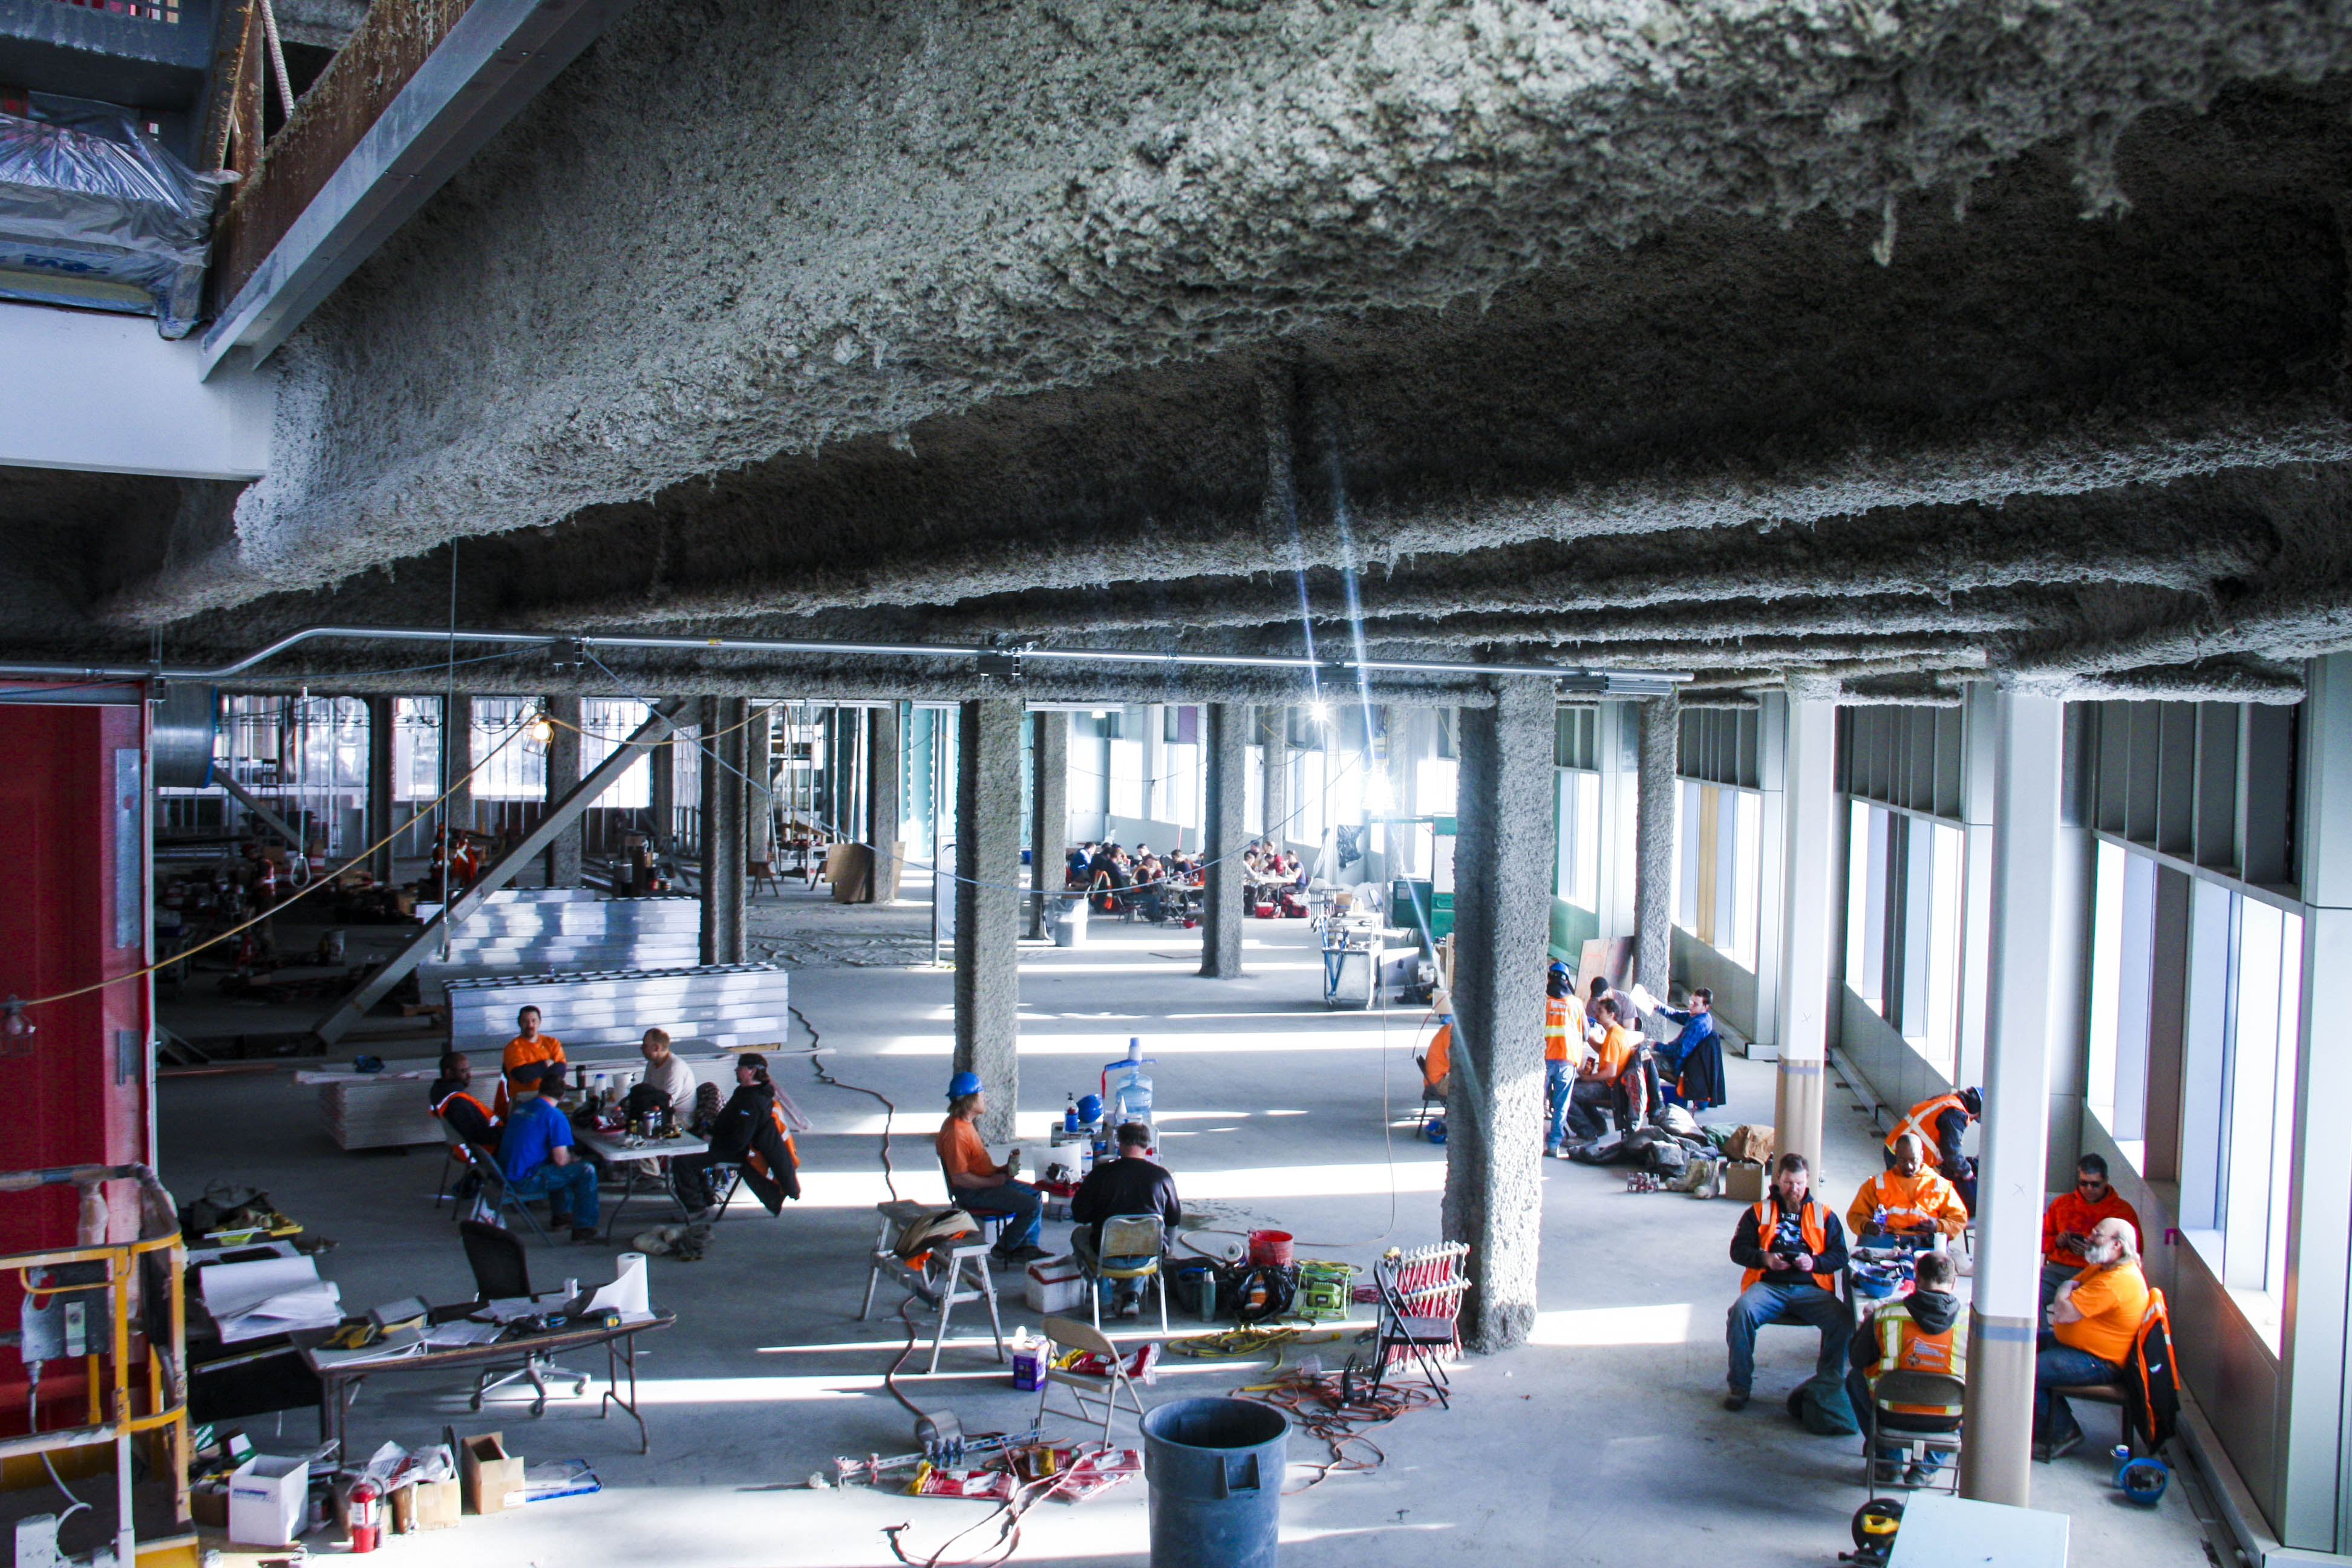 Workers in the engineering building stop for a lunch break during the workday on Friday. - Chris Hoch / Sun Star